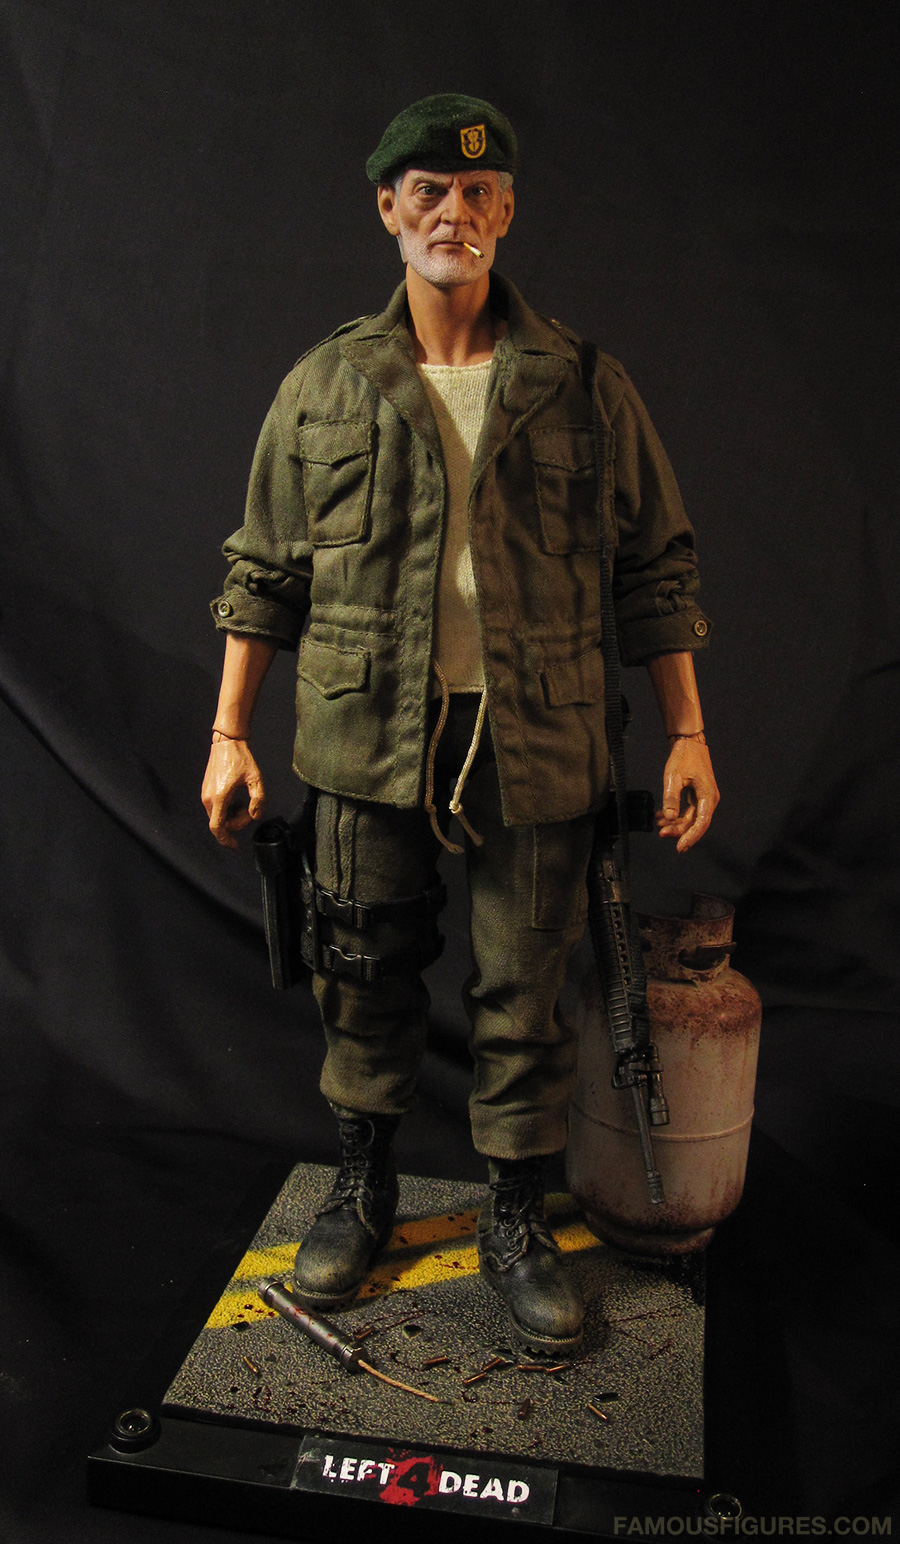 Bill L4D left 4 dead custom action figure 12""